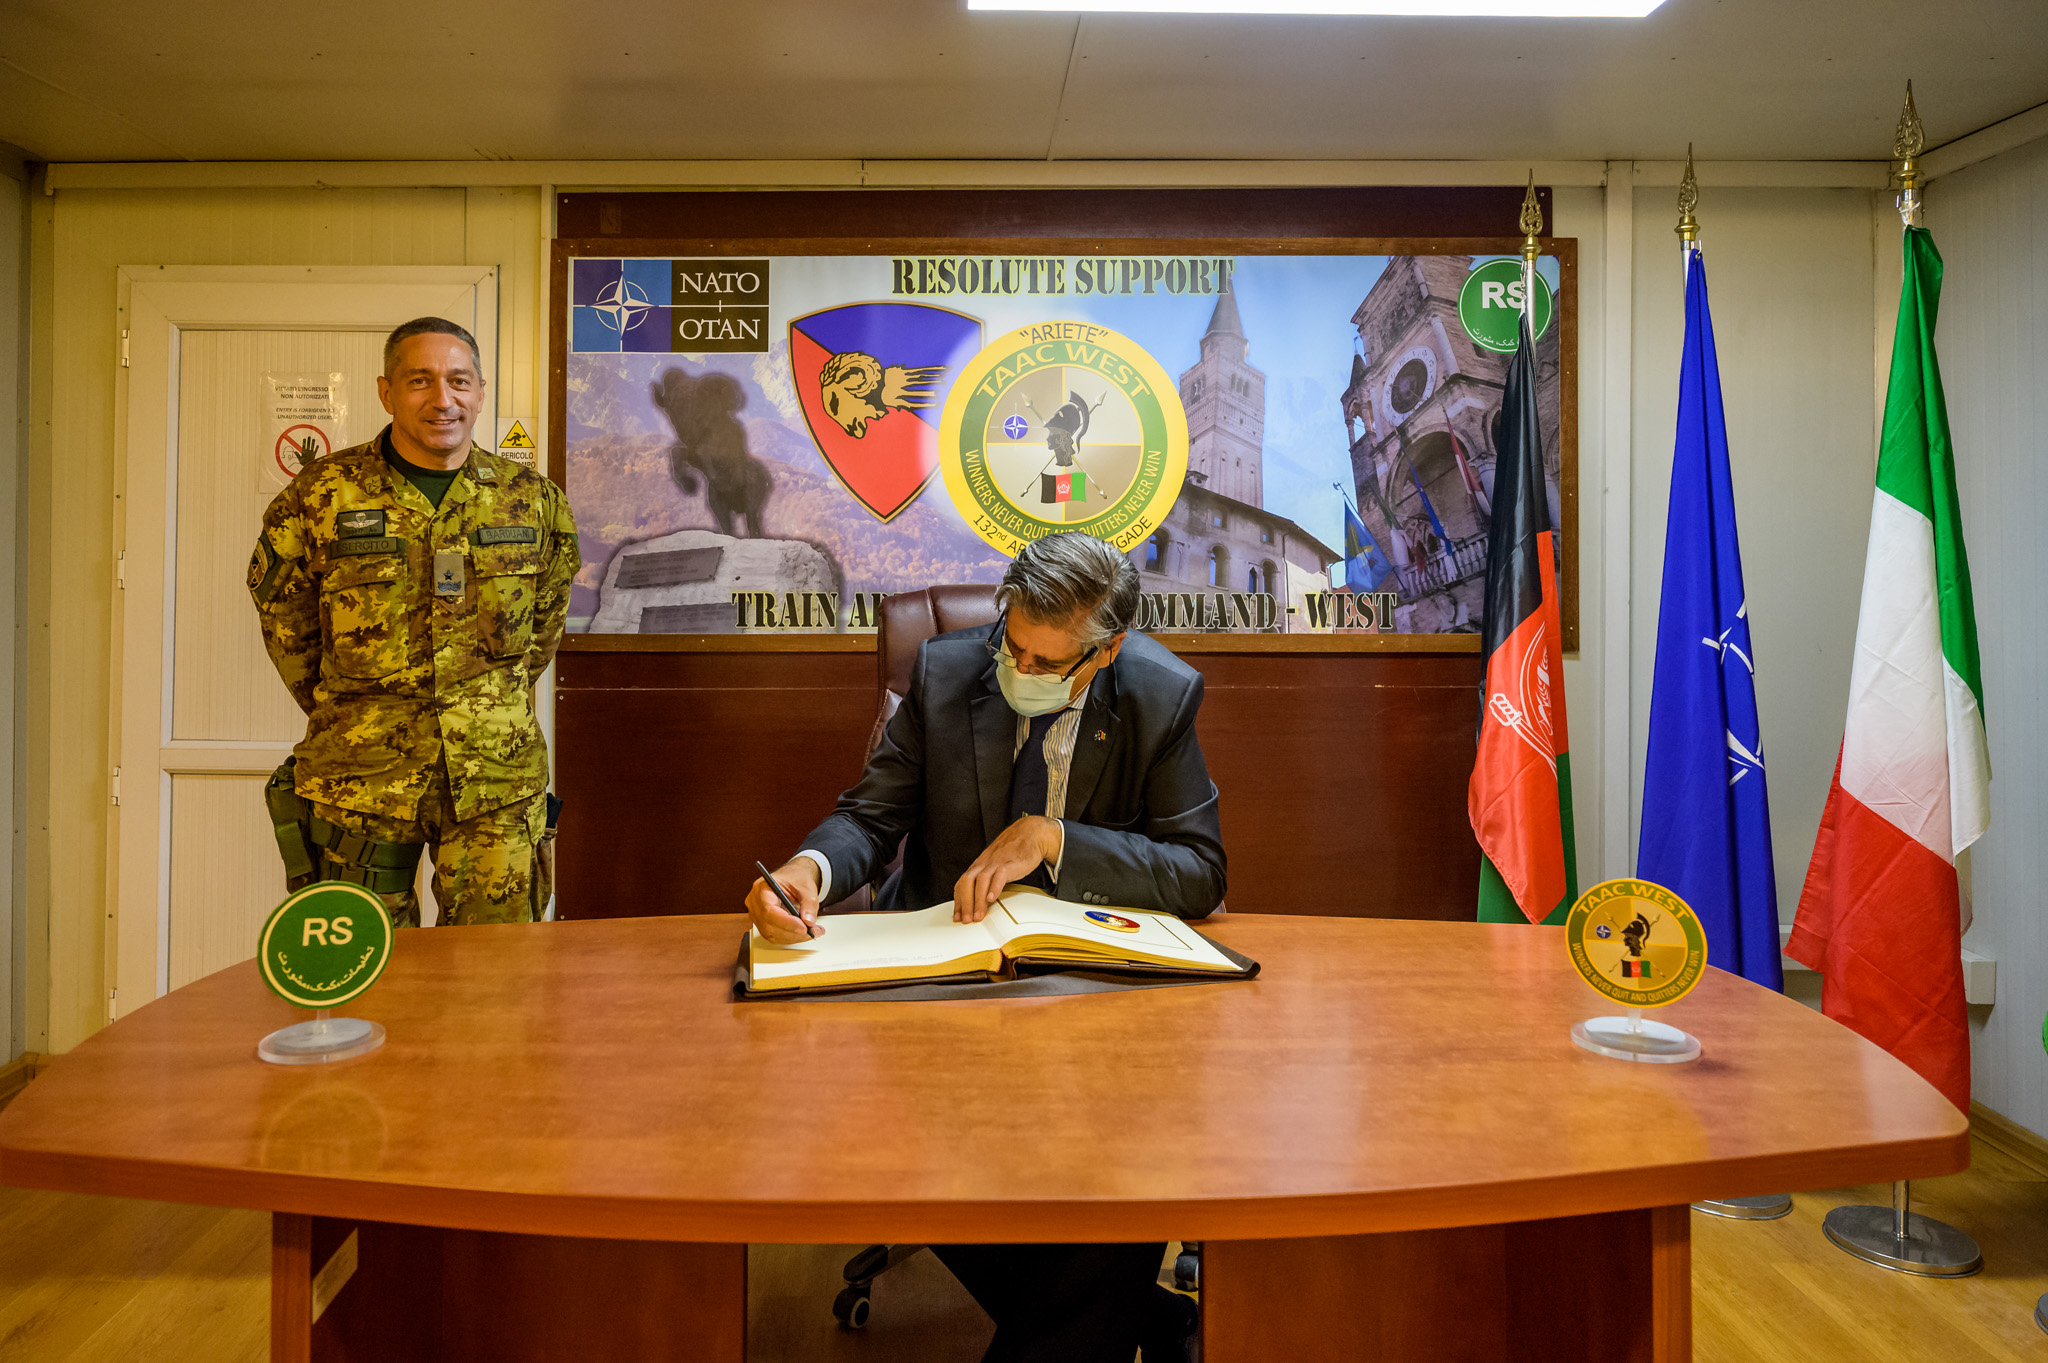 6. Firma dell'albo d'onore del TAAC-W